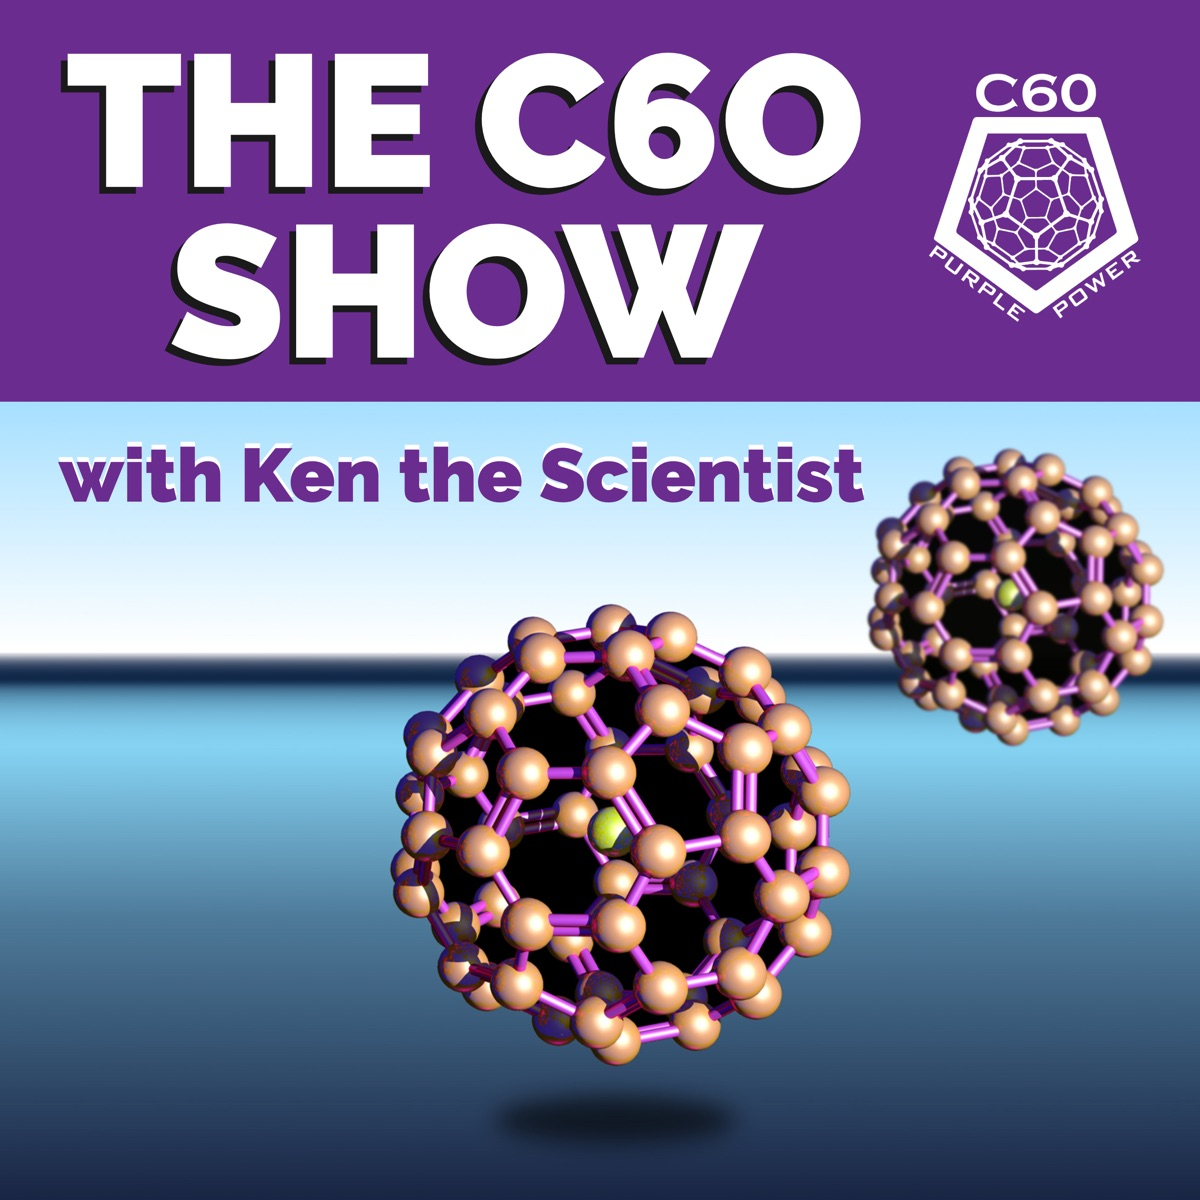 The C60 Show